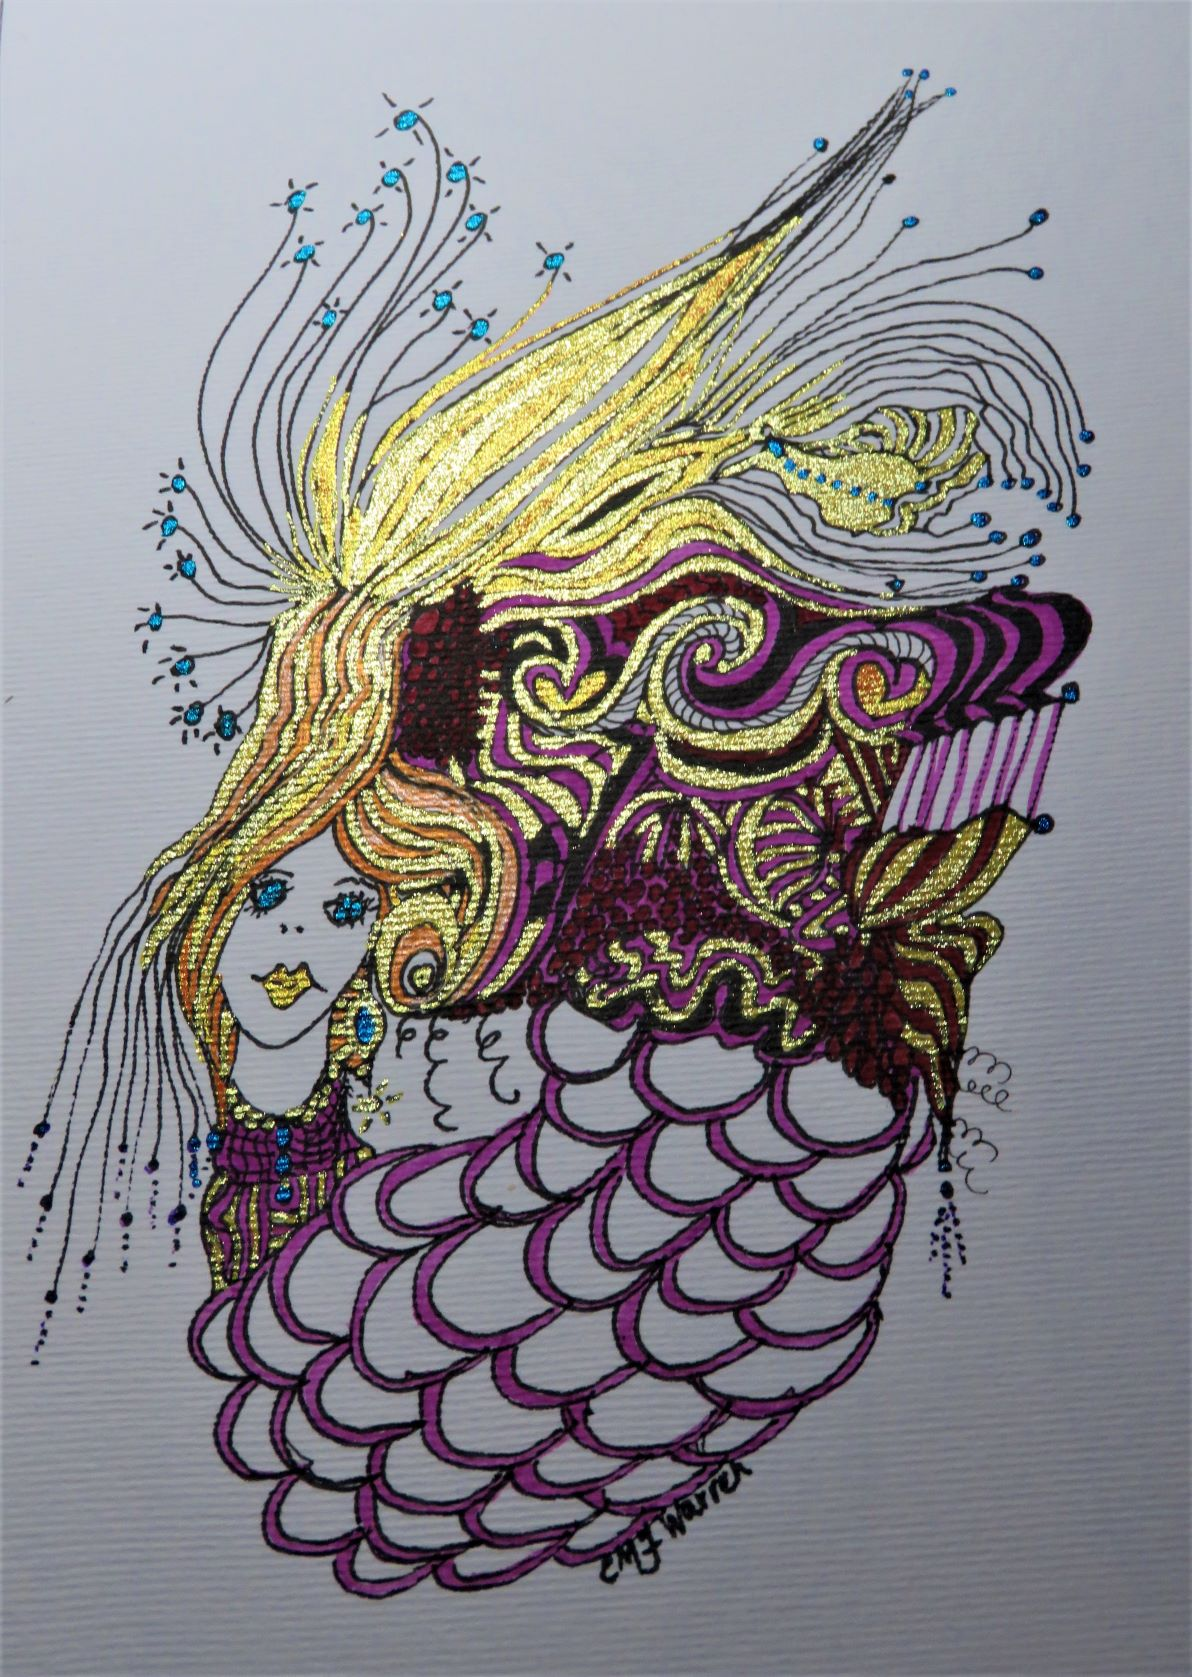 winds-of-change-pen-ink-marker-drawing-Eithne-Warren-https://insideheartspace.com